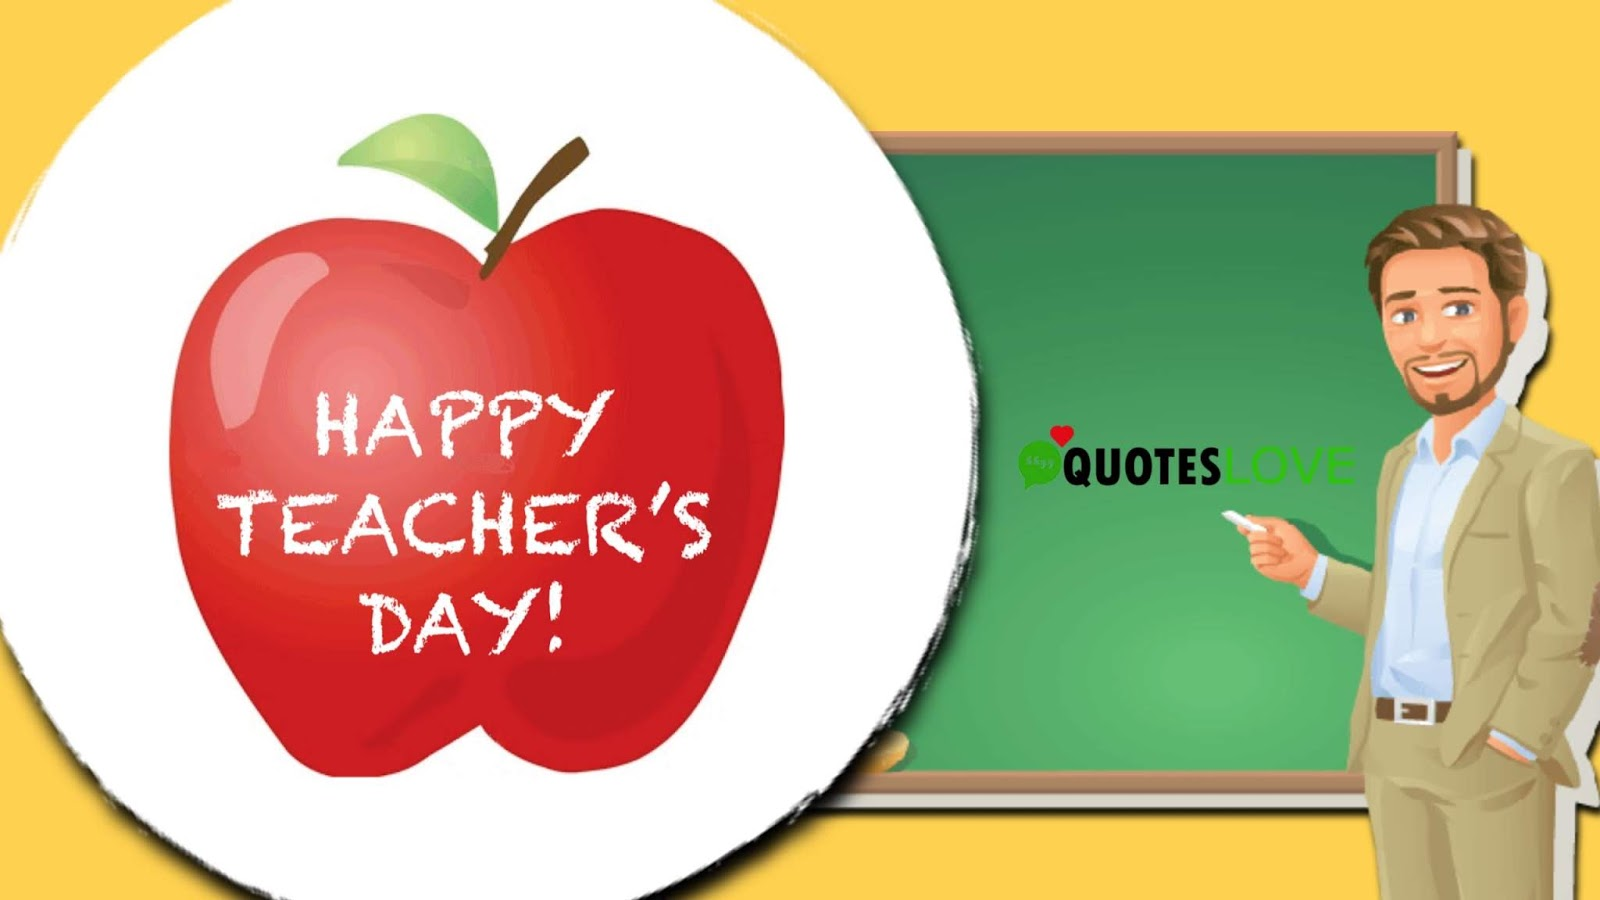 (New) Happy Teachers Day Quotes, Status, Wishes, Images and Messages for Year 2019